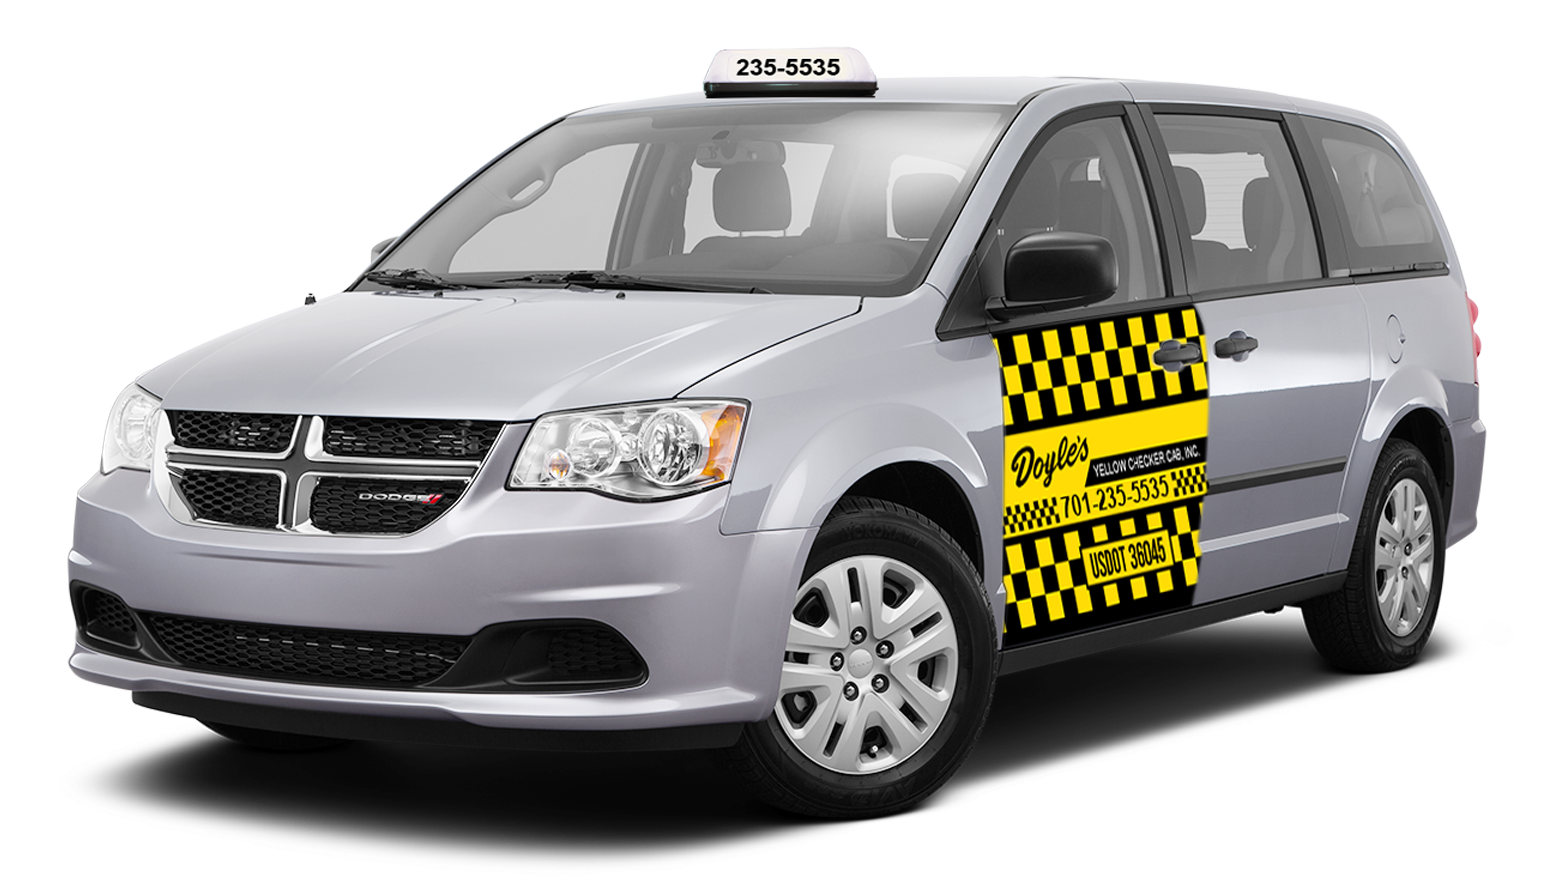 Doyle s fargo taxi. Driving clipart cab driver banner library download